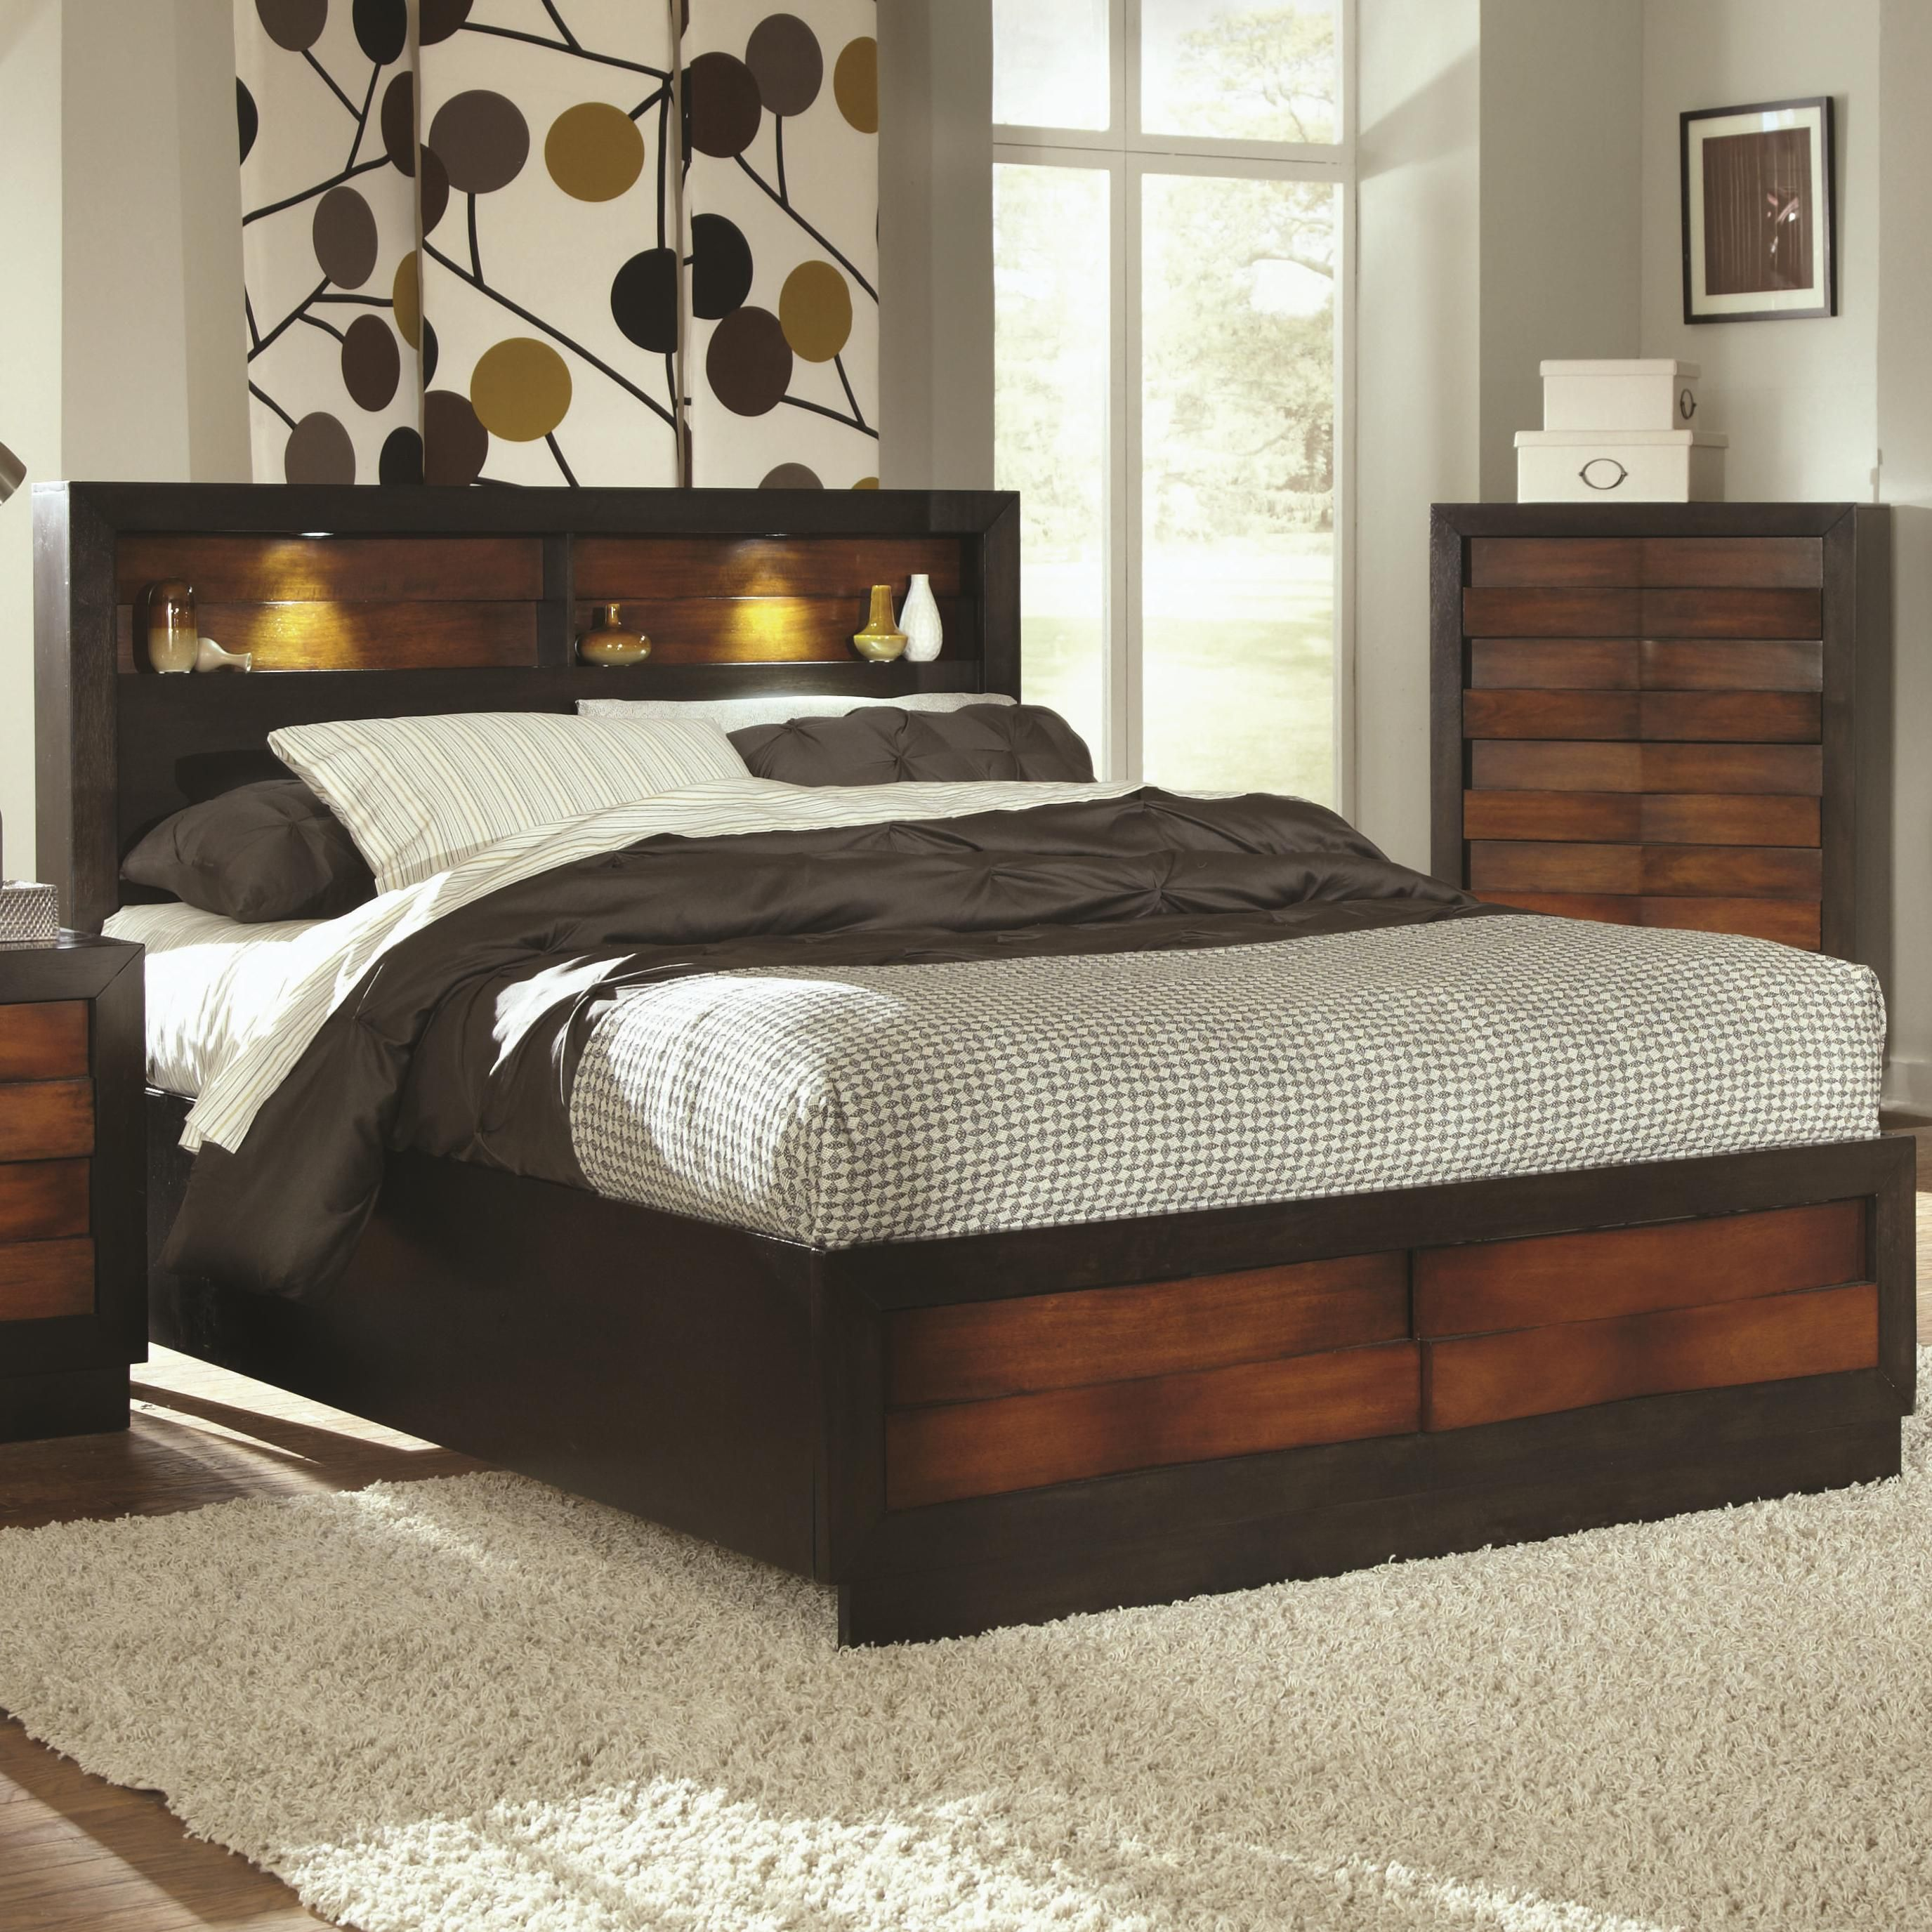 Furniture Bedroom Two Tone Polished Teak Wood Platform